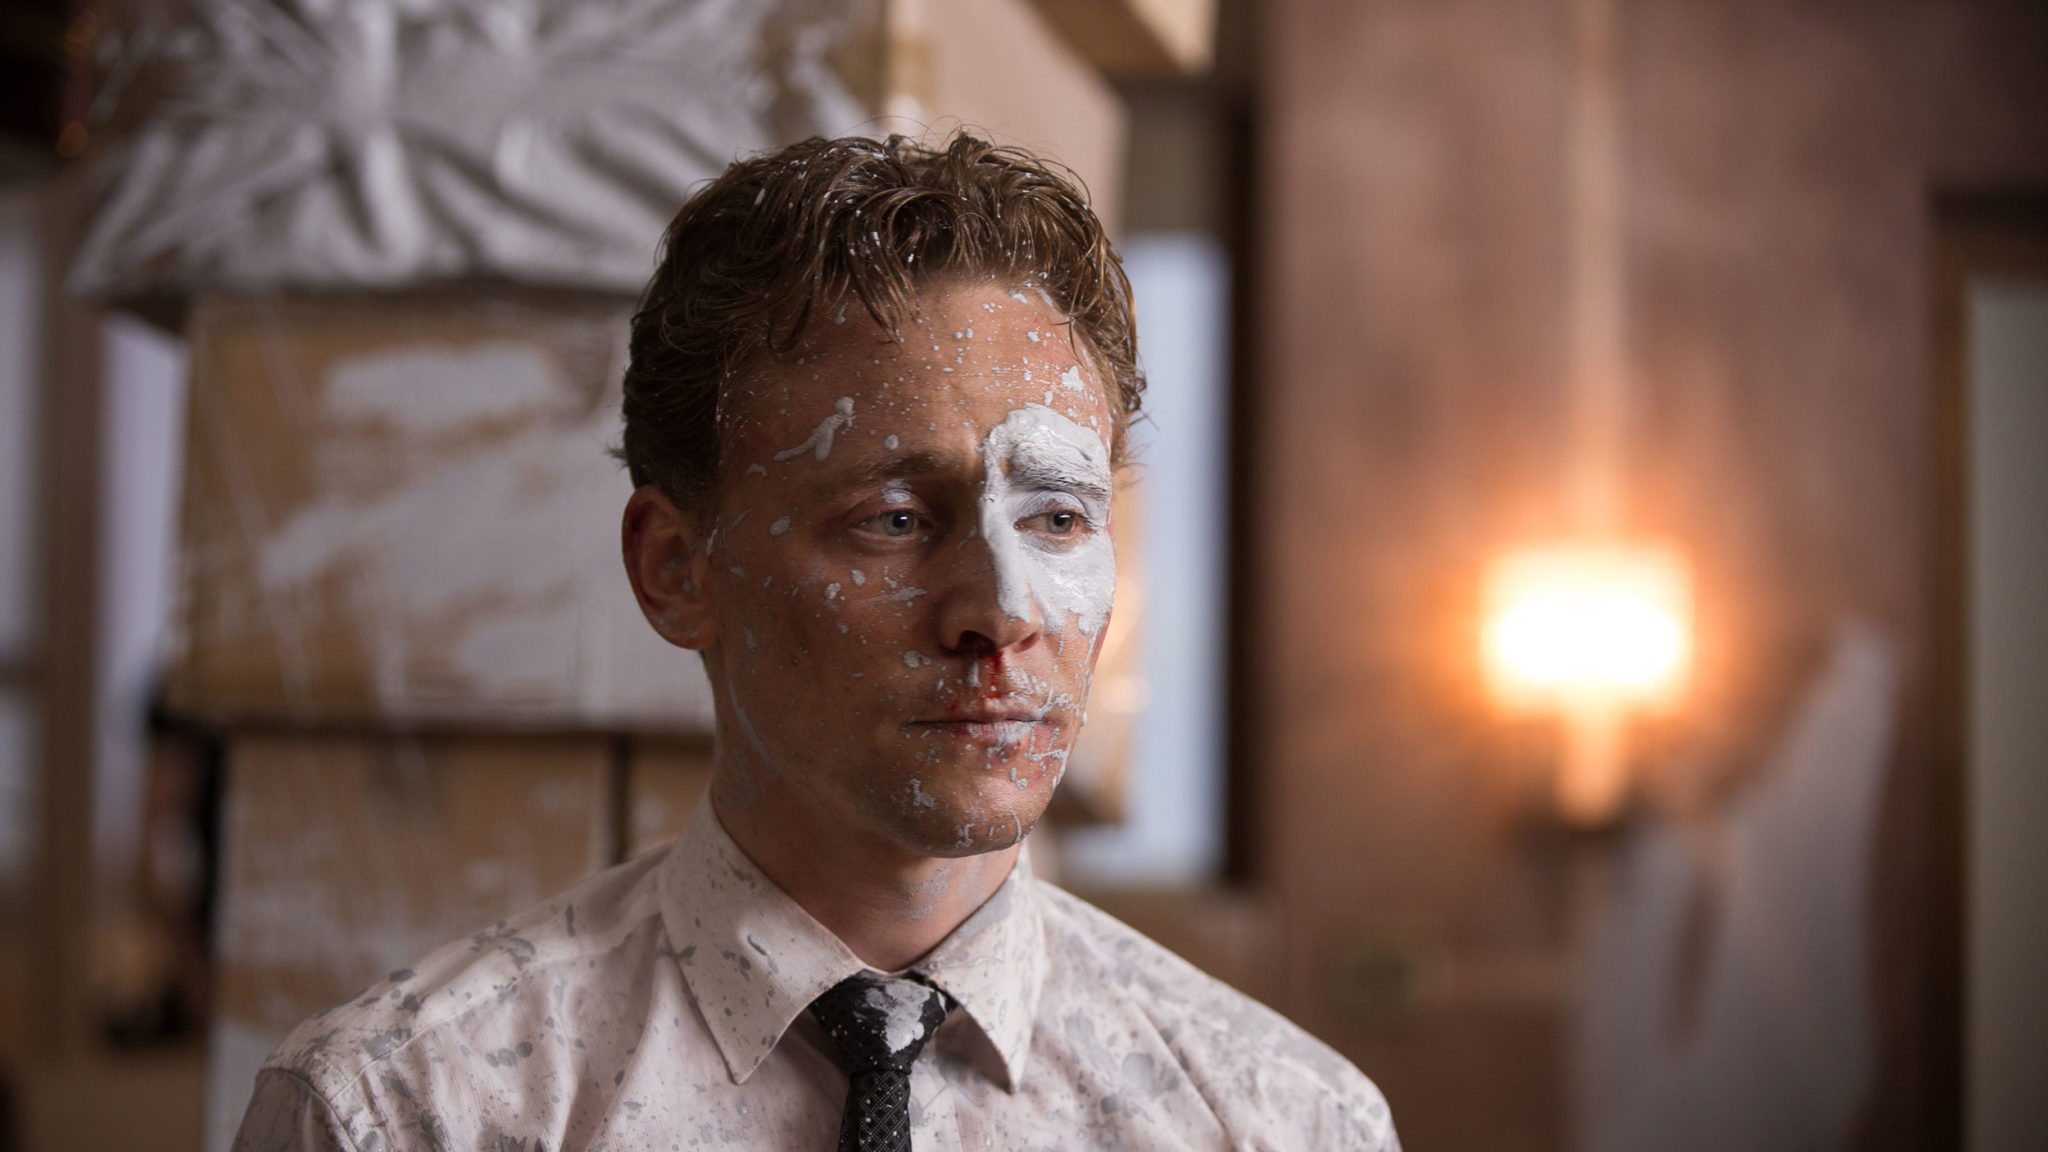 Dr. Robert Laing (Tom Hiddleston) bringt etwas Farbe in den Film (Foto: DCM)